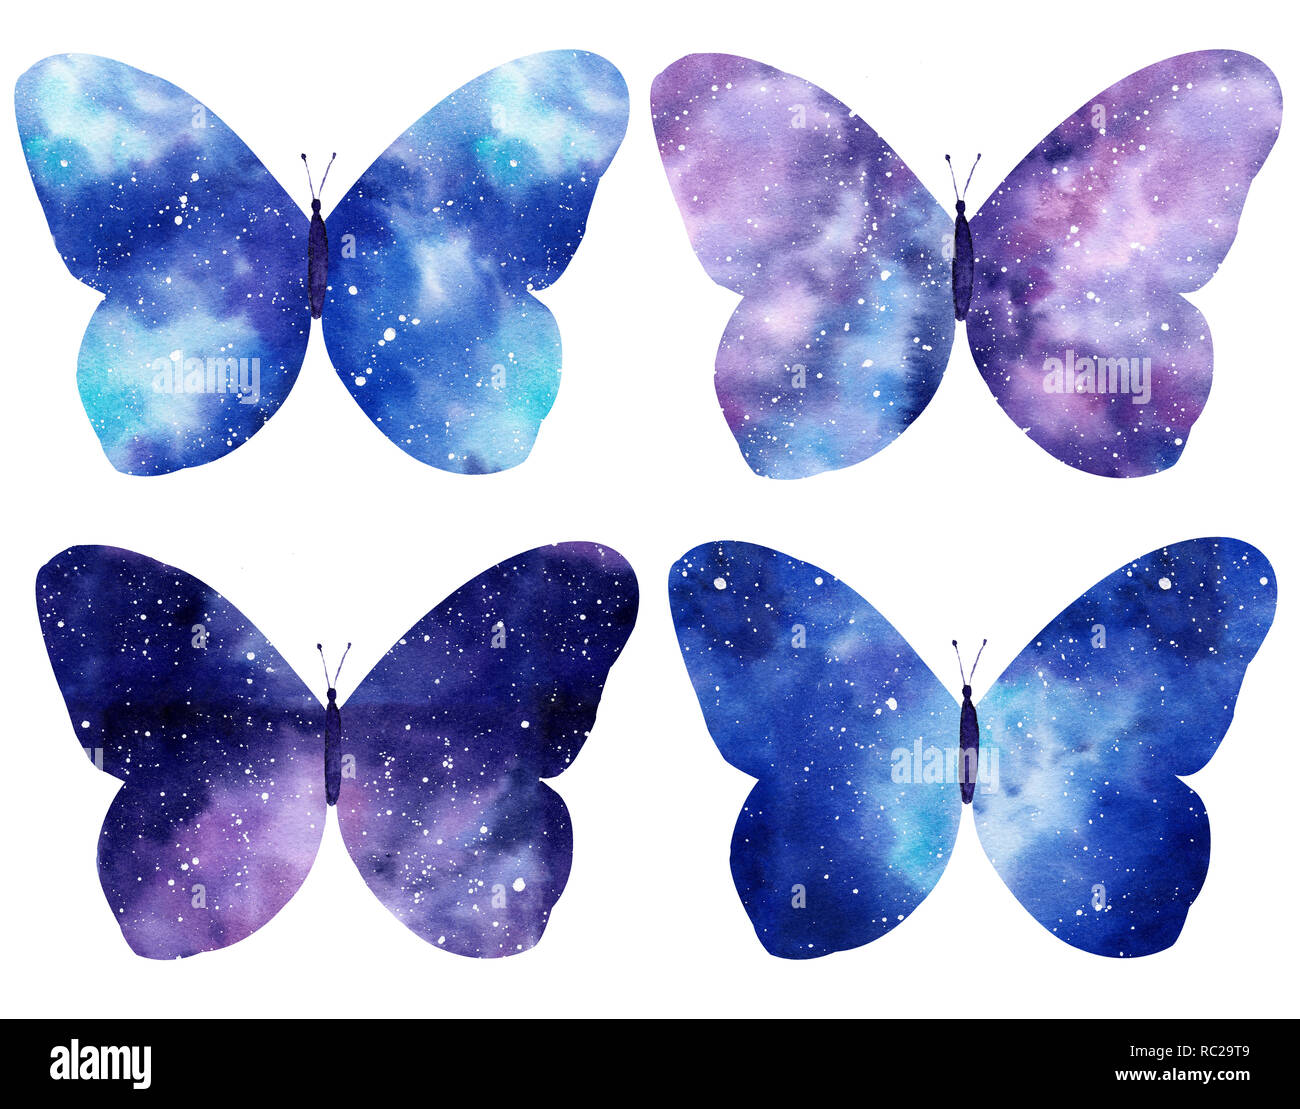 Set of Watercolor galaxy butterflies isolated on the white background. Hand painted watercolor illustration perfect for Valentine's day invitation or  - Stock Image